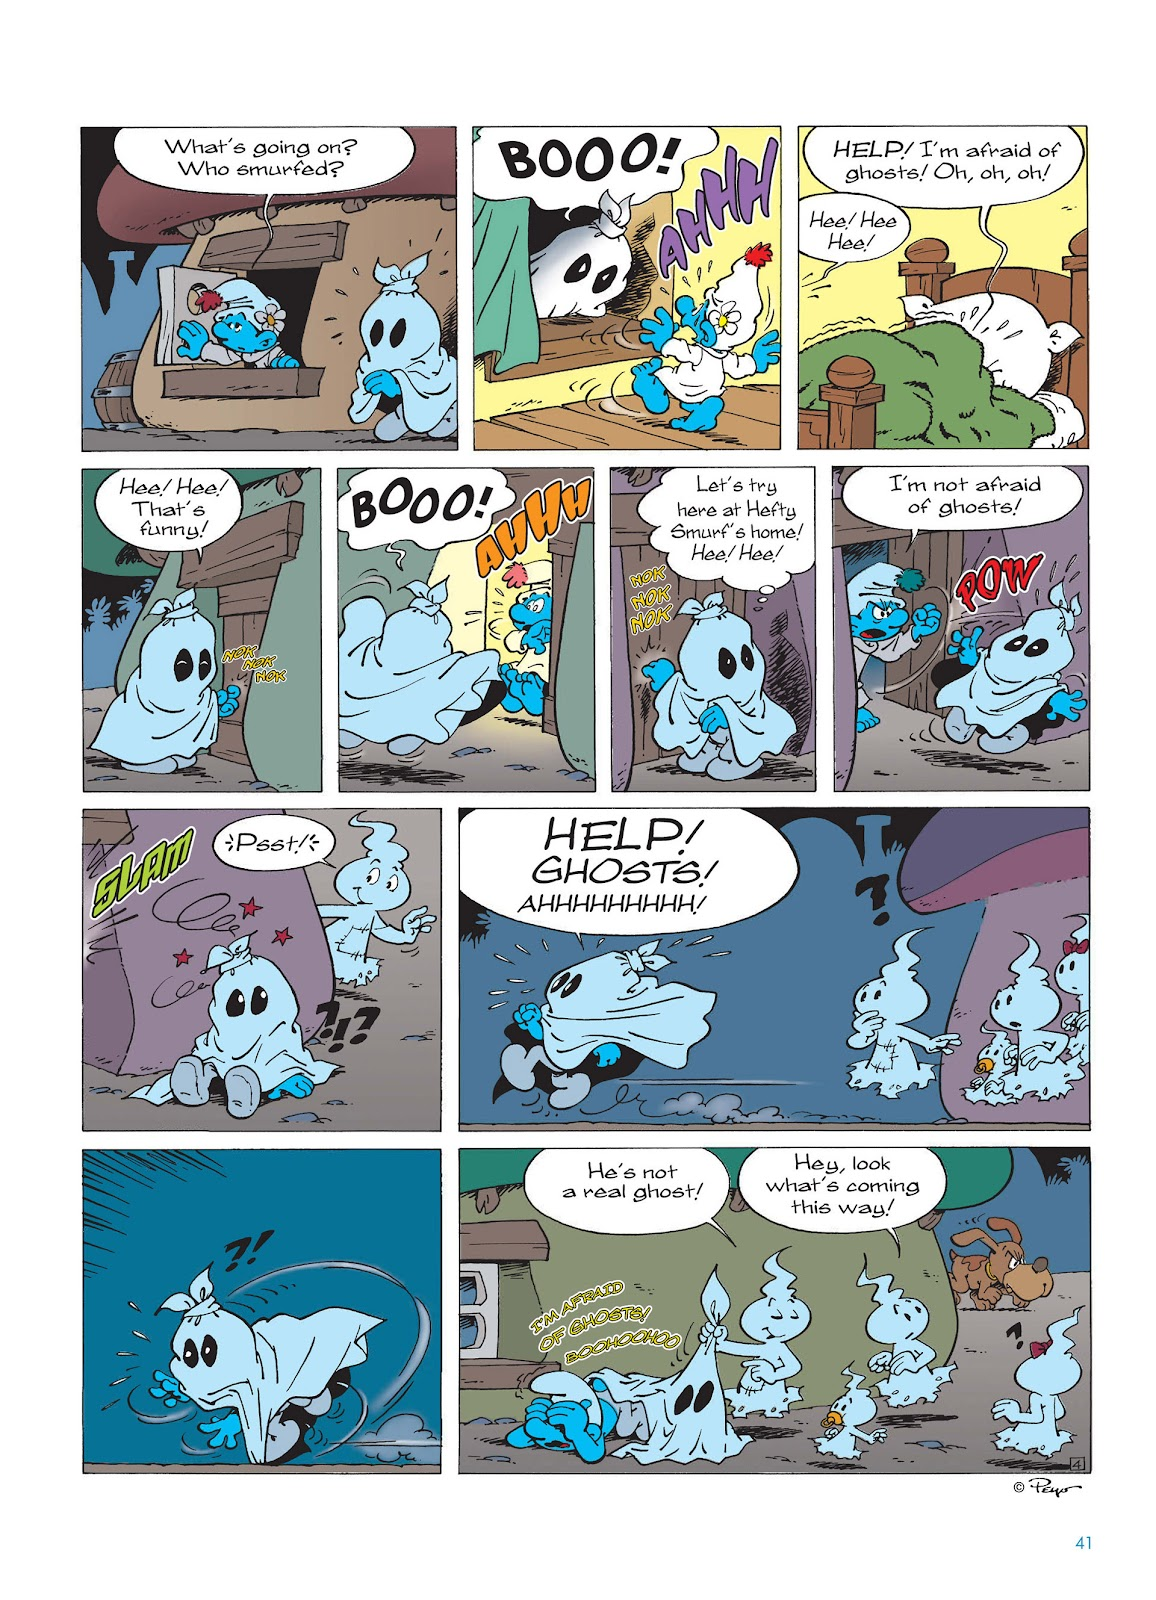 Read online The Smurfs comic -  Issue #15 - 42